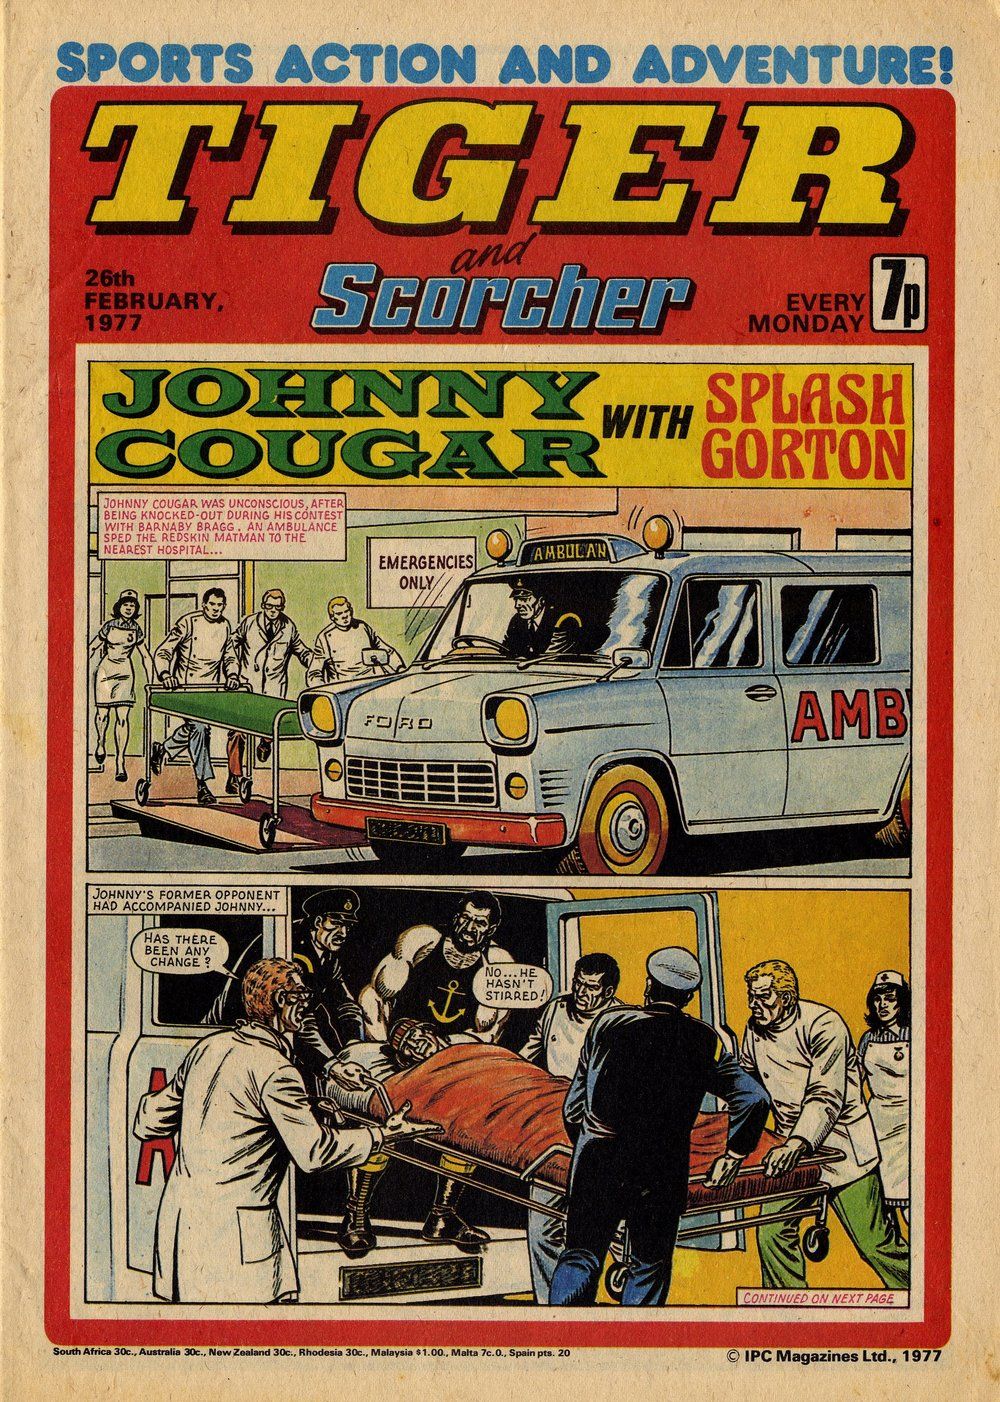 Johnny Cougar with Splash Gorton: Barrie Tomlinson (writer), Sandy James (artist)